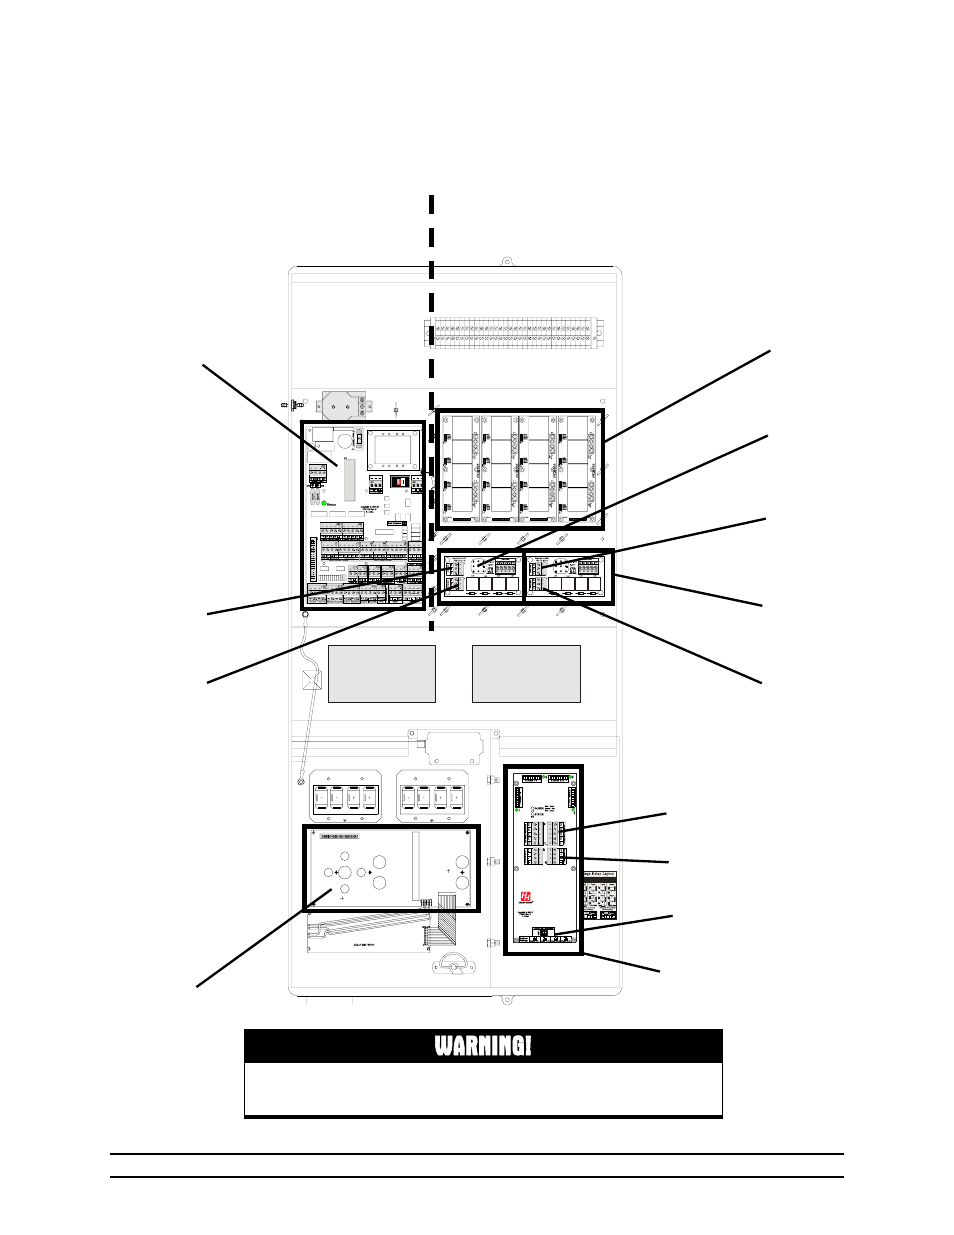 low voltage household wiring diagram warning, wiring diagrams | hired-hand evolution series ... low voltage network wiring diagram